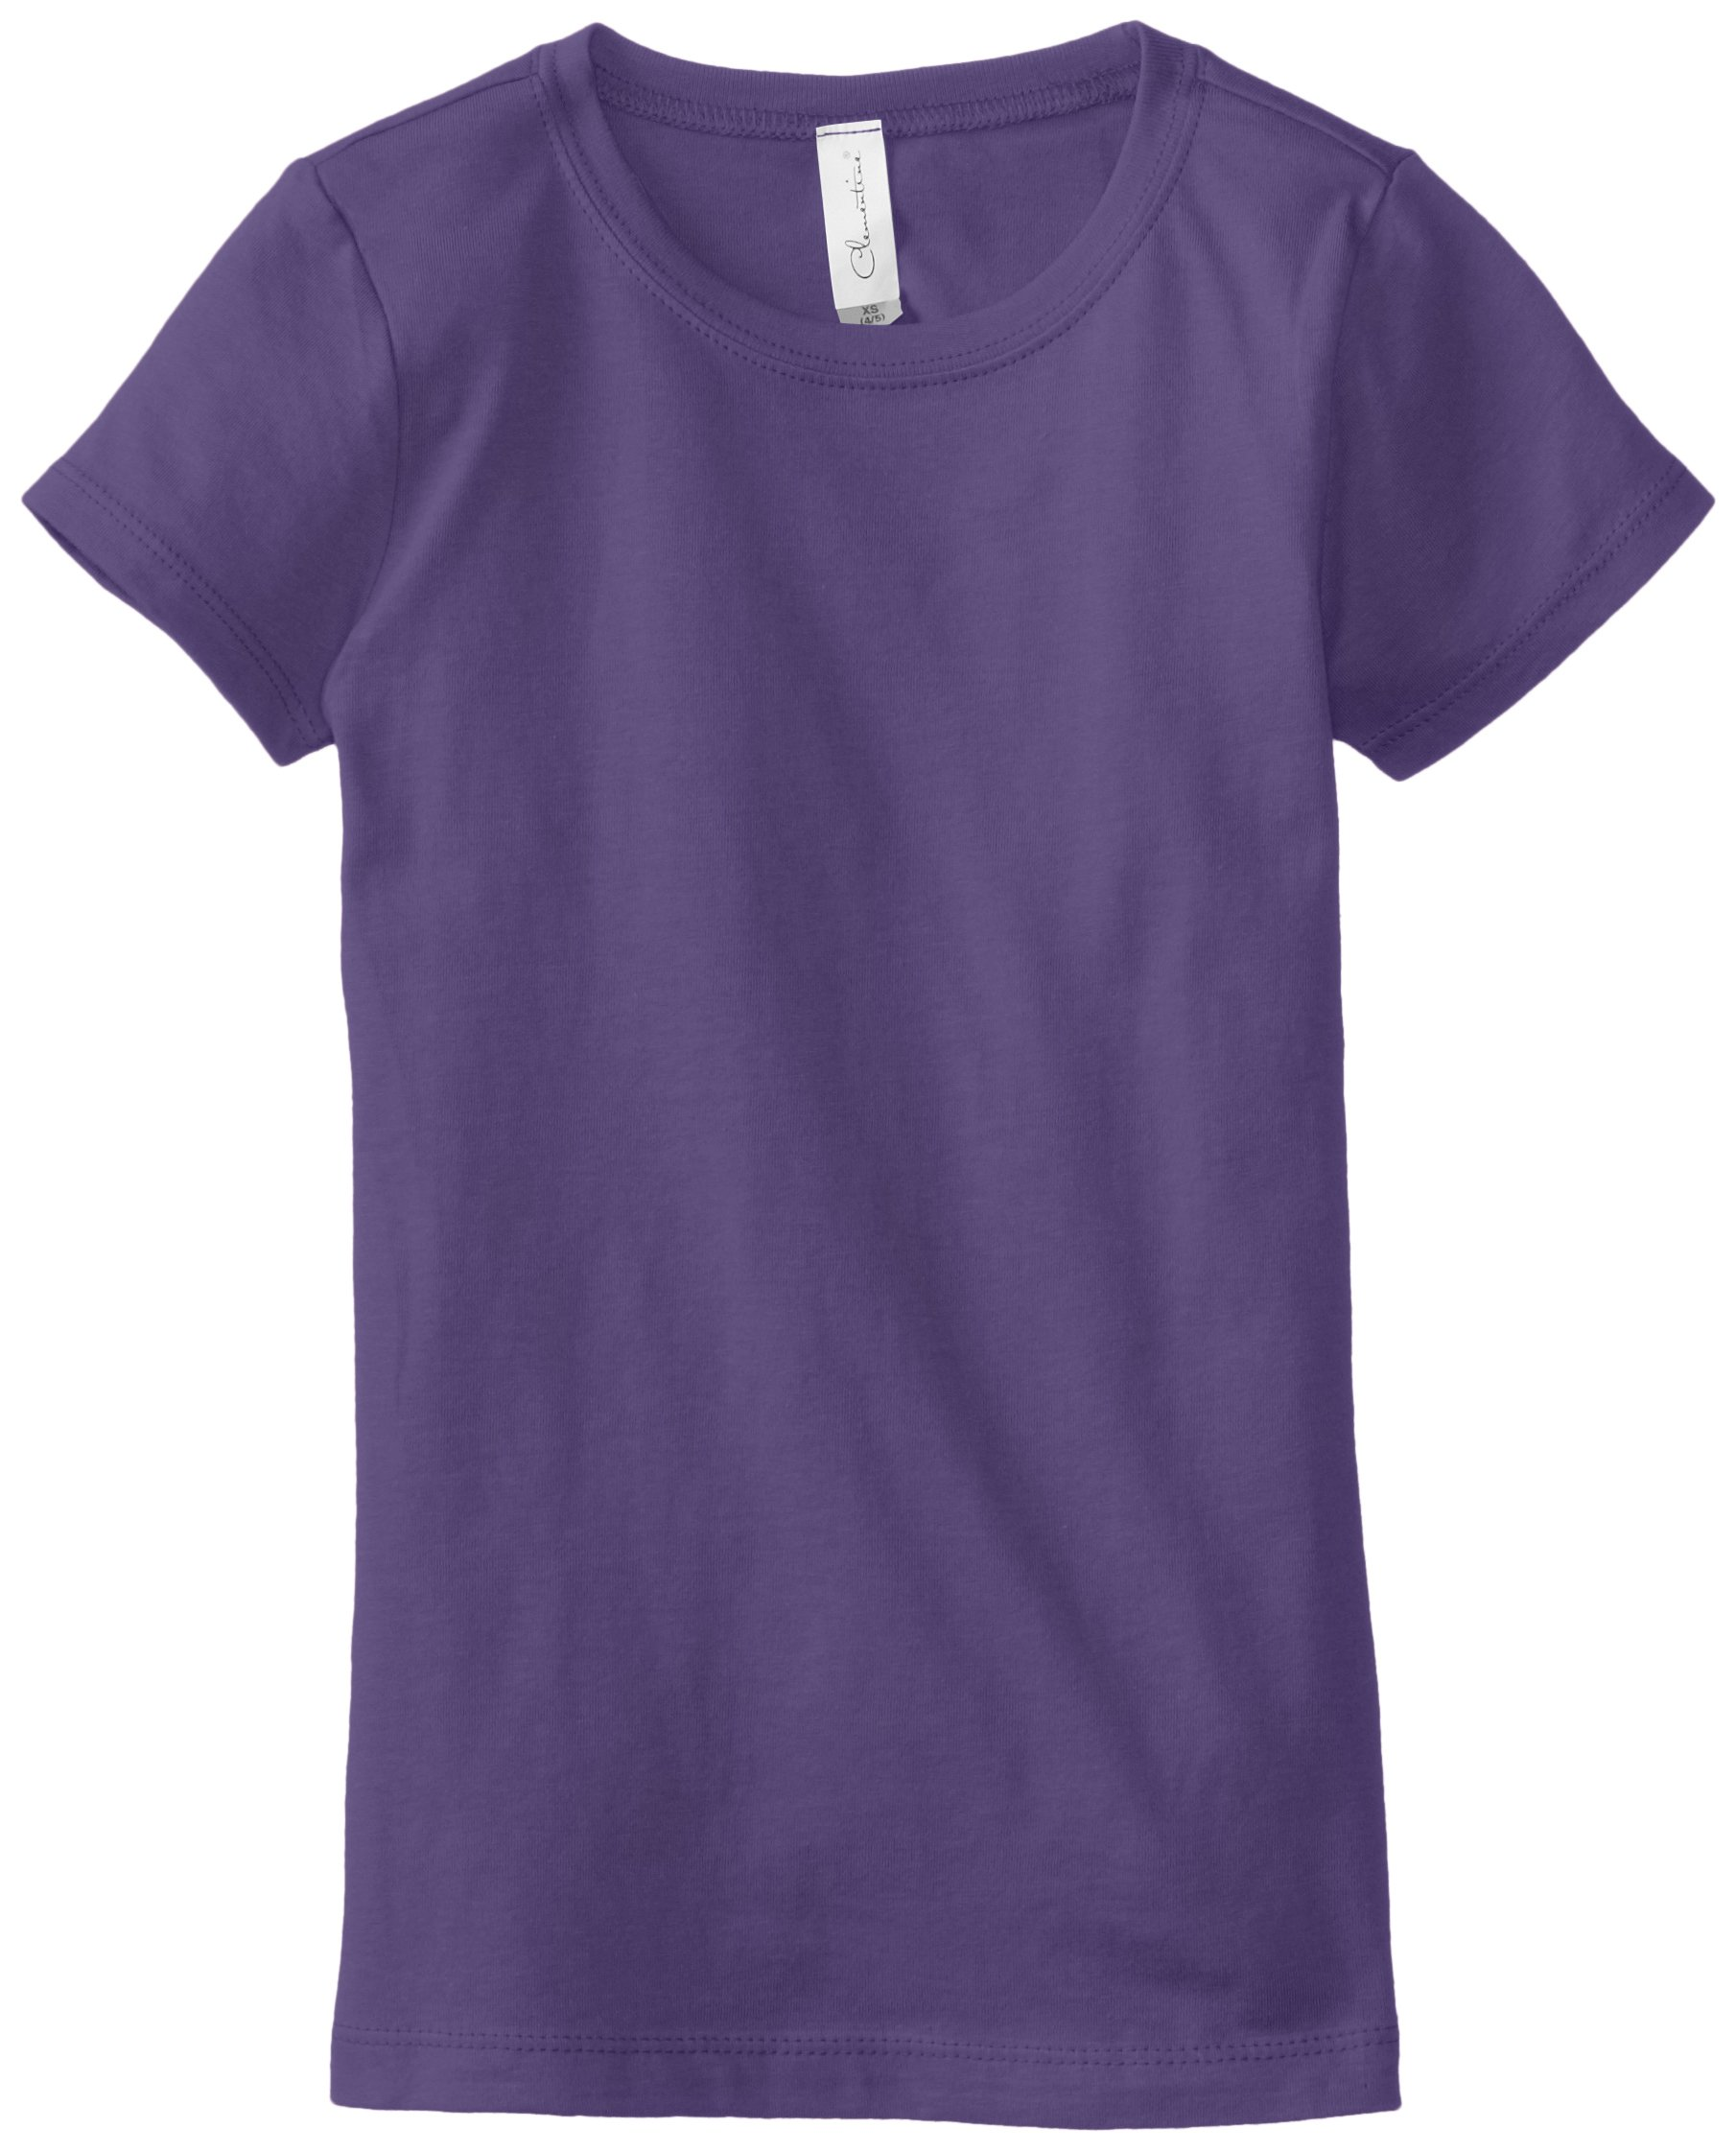 Clementine Little Girls' Everyday T-Shirt, Purple Rush, Small(6-6X)